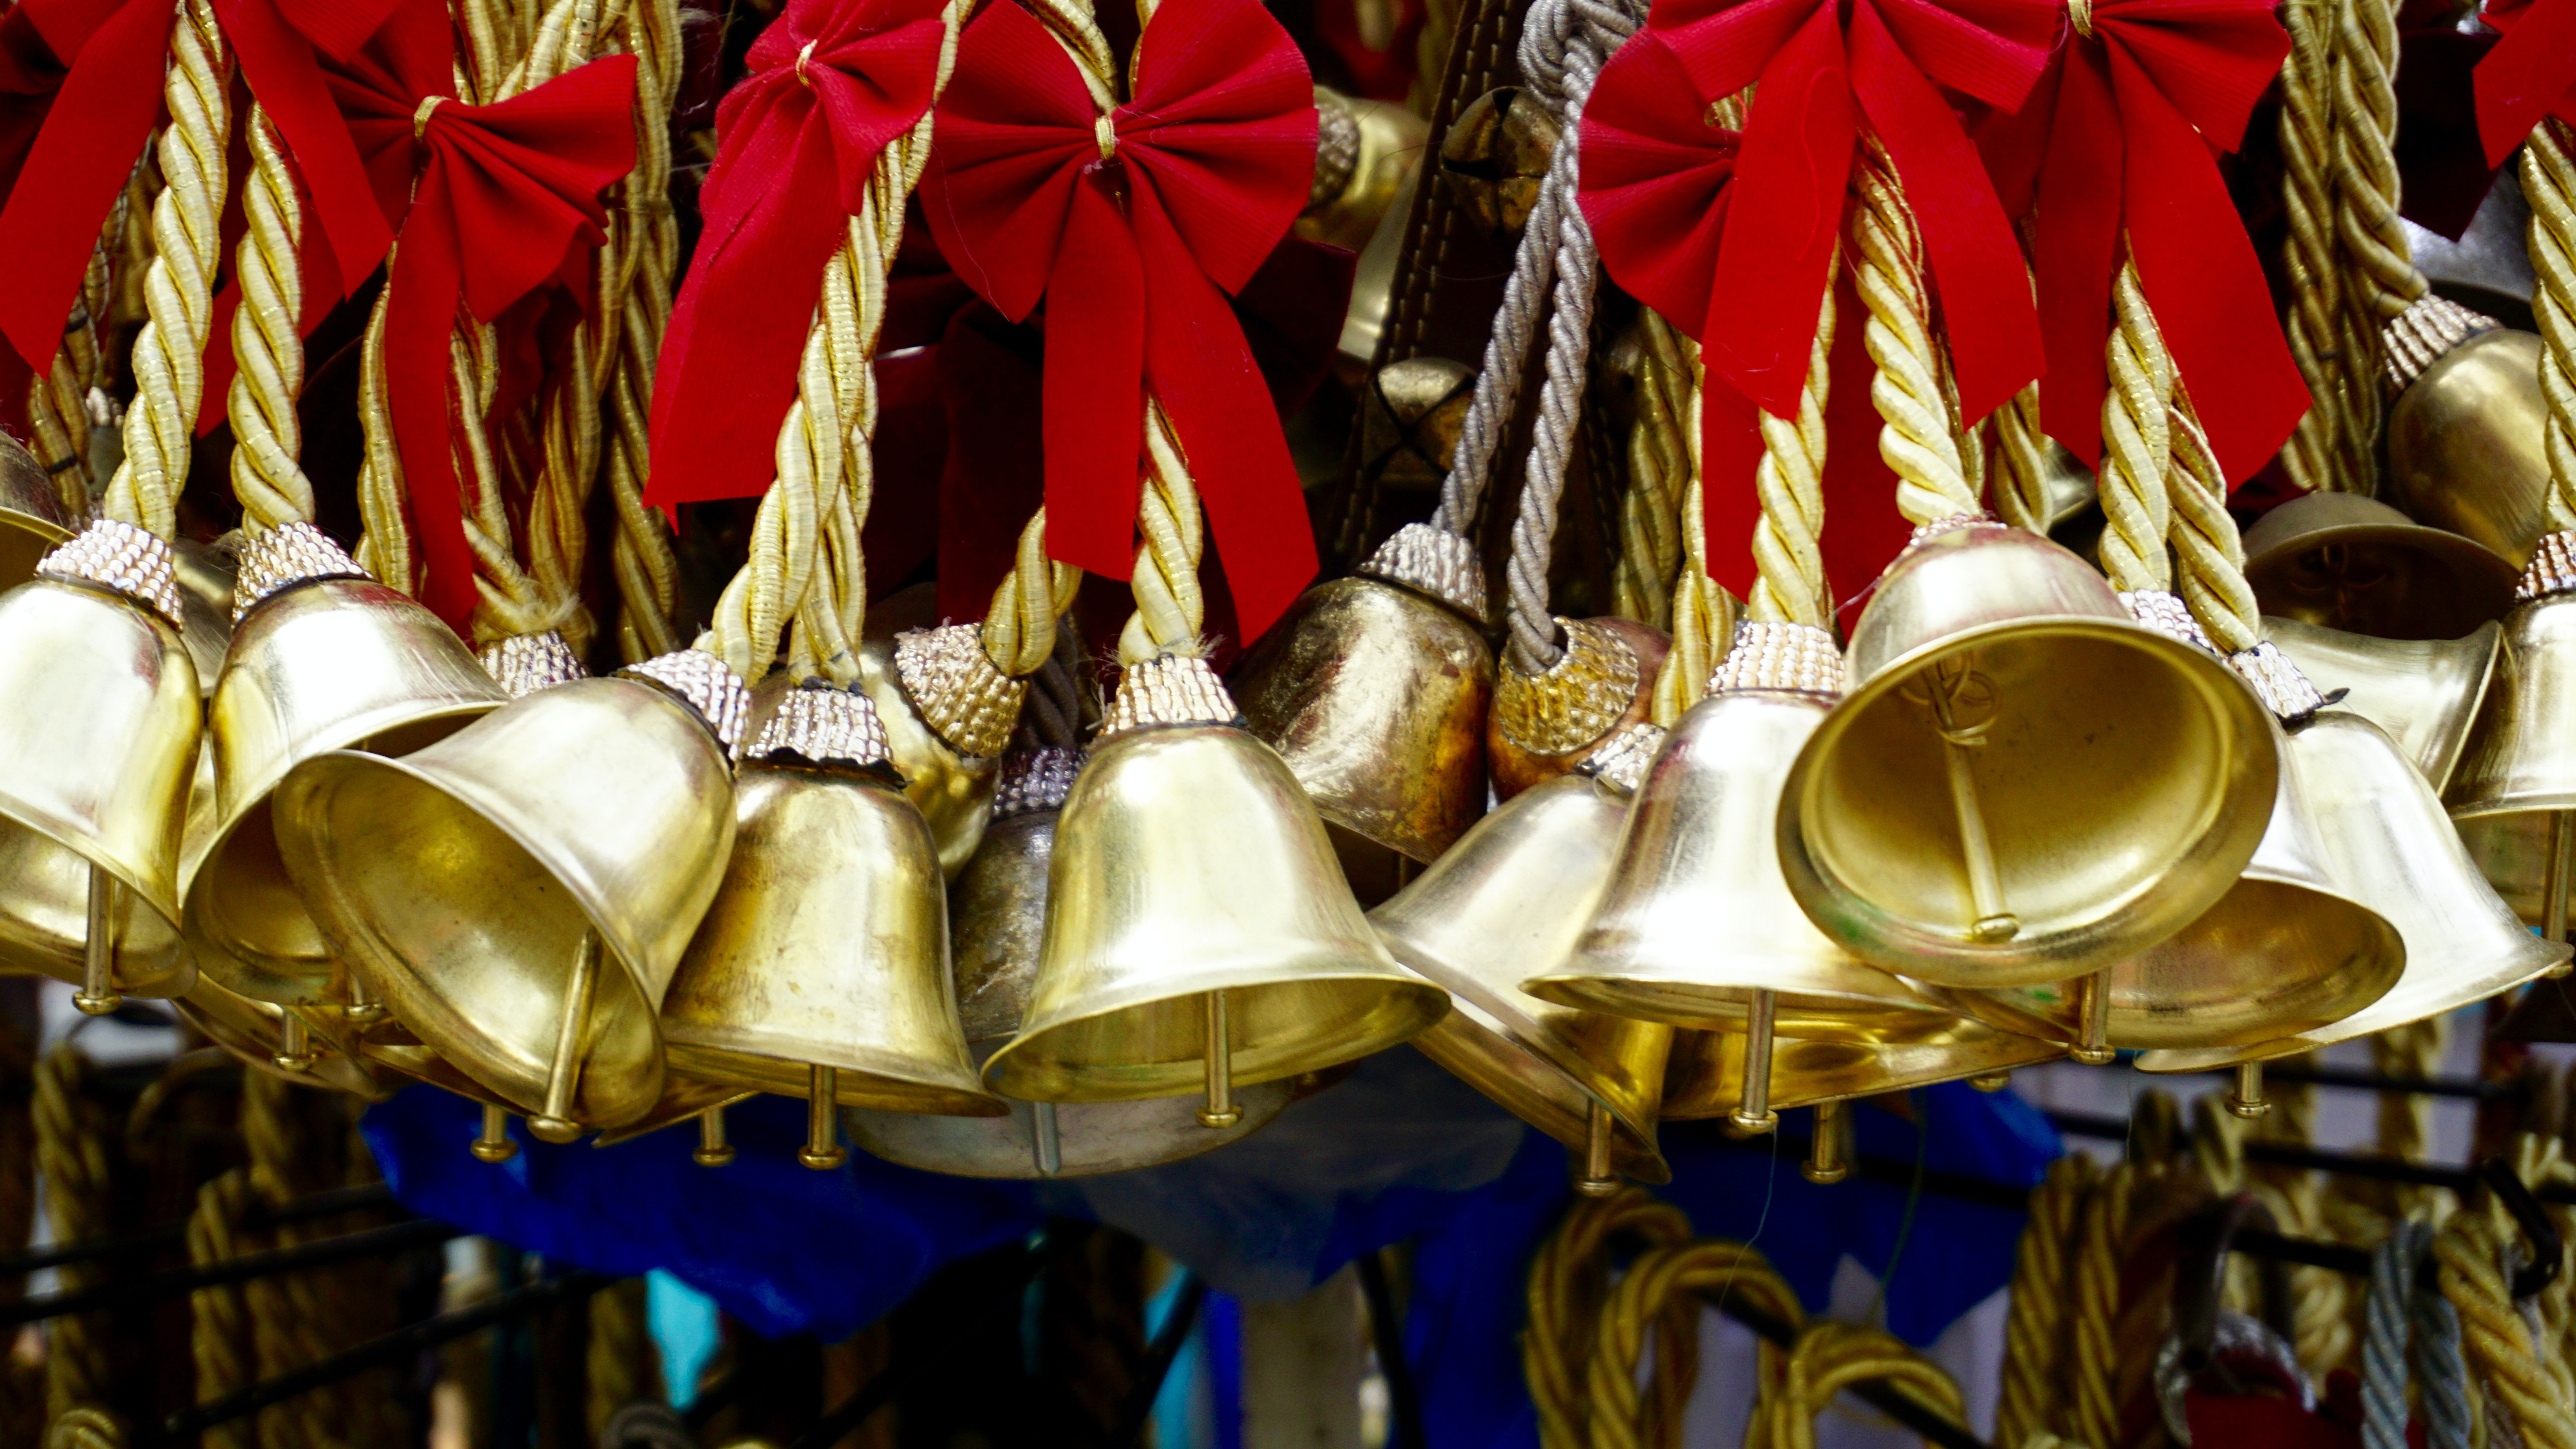 Gold Bell Lot · Free Stock Photo